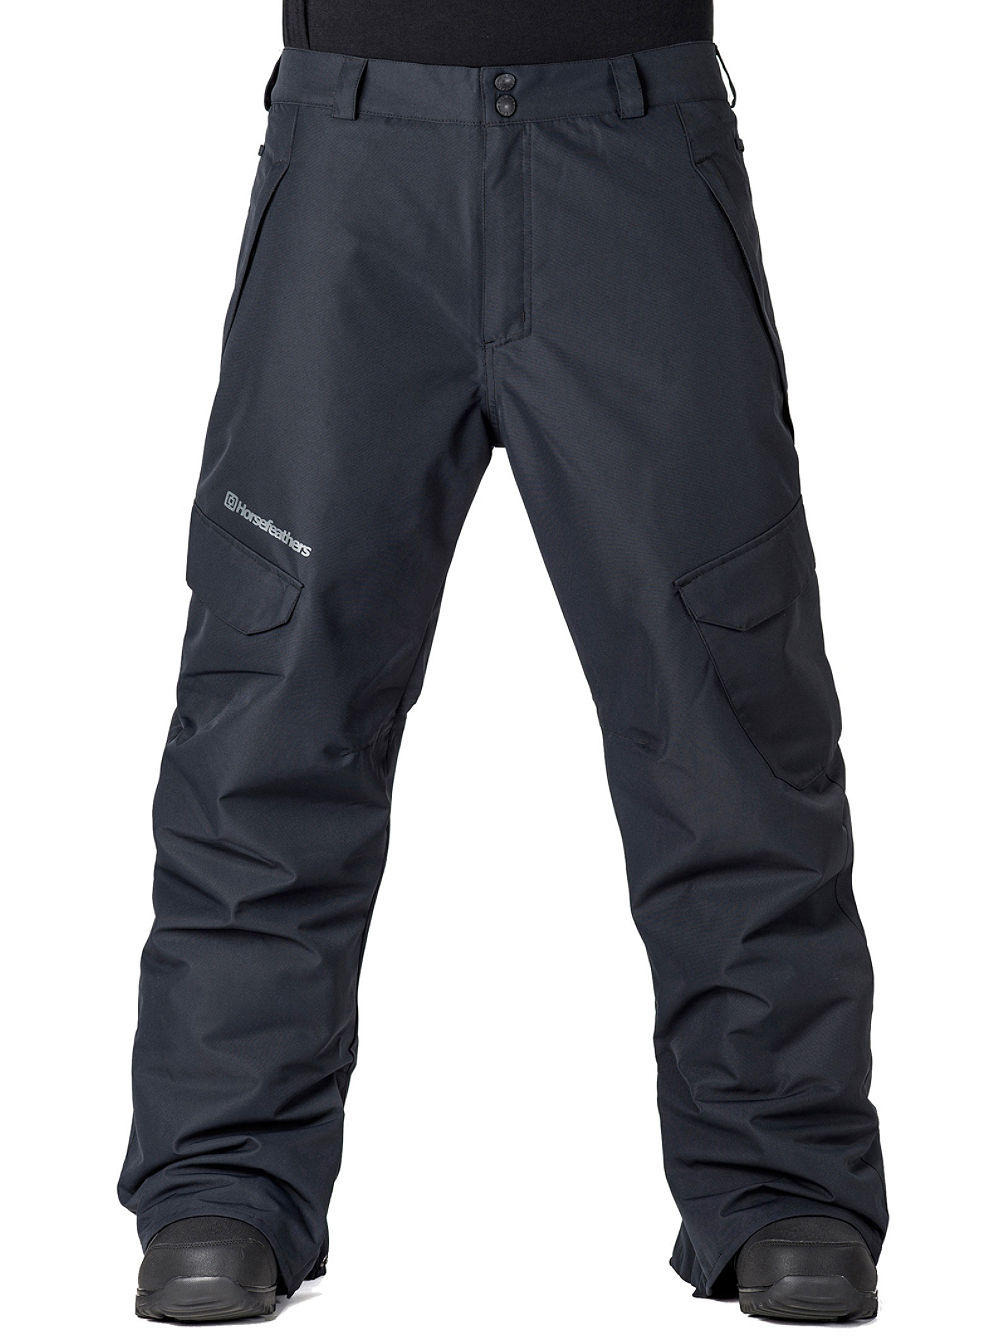 Voyager Pants